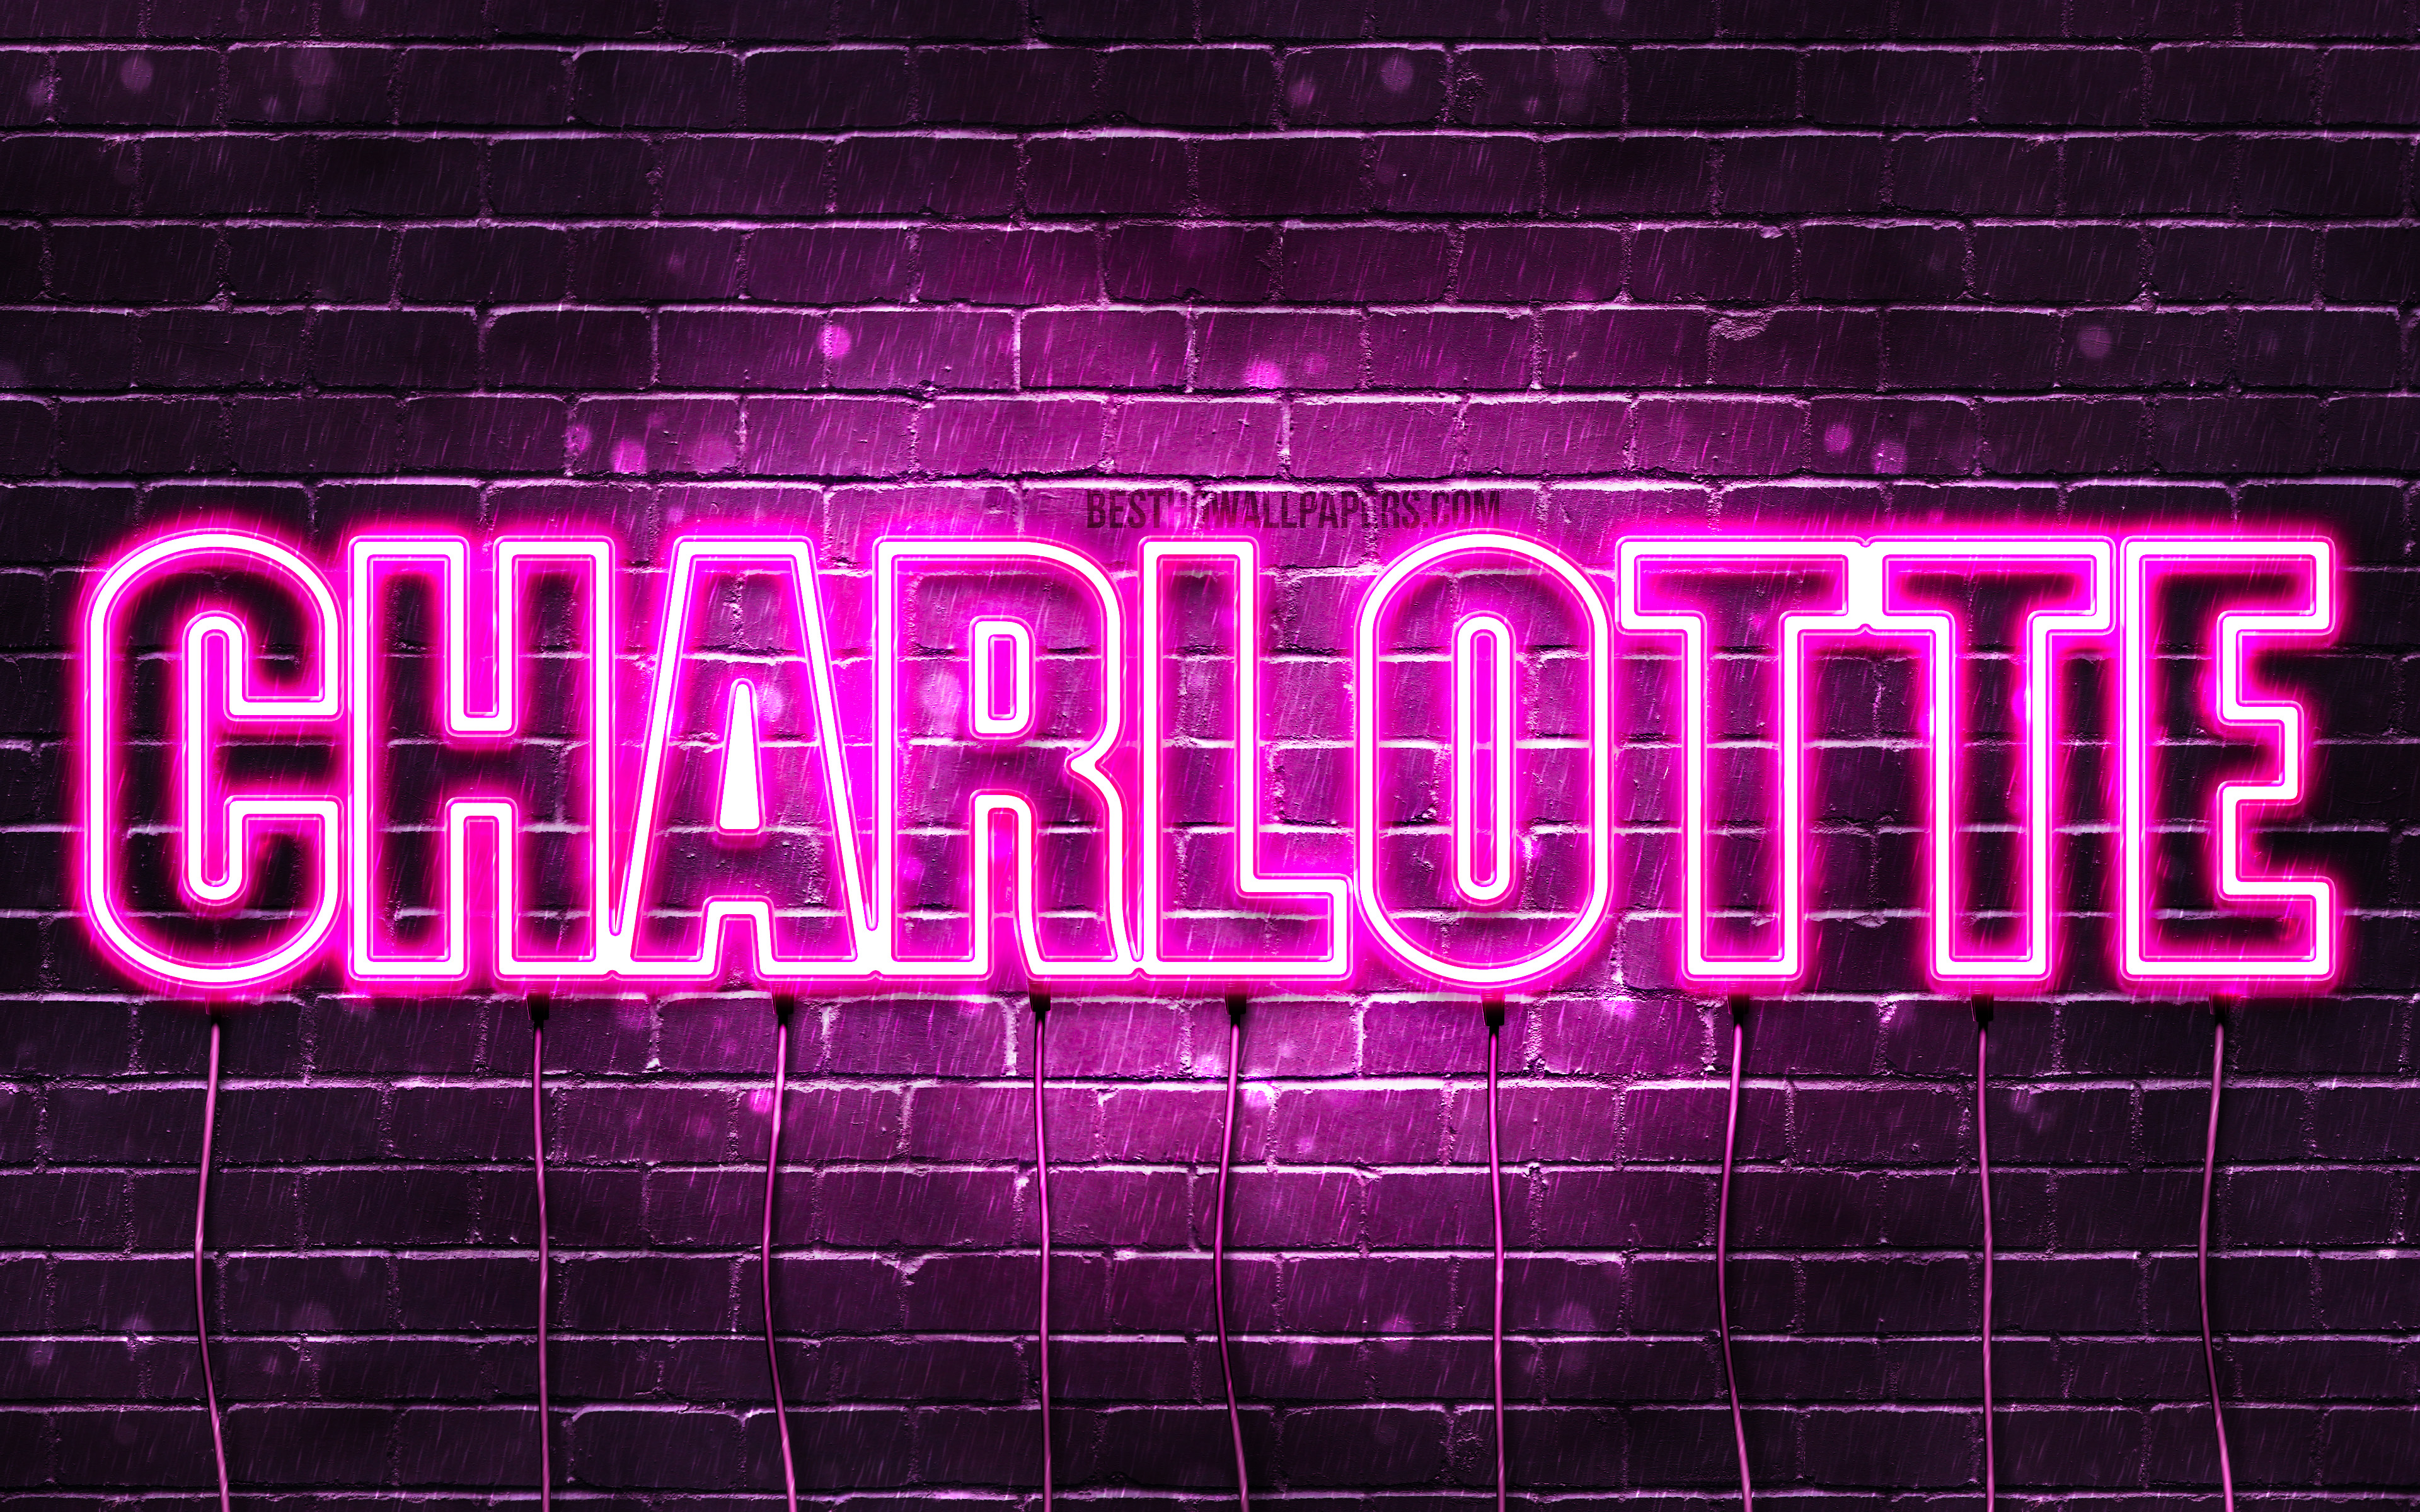 Charlotte, 4k, wallpapers with names, female names, Charlotte name, purple neon lights, horizontal text, picture with Charlotte name